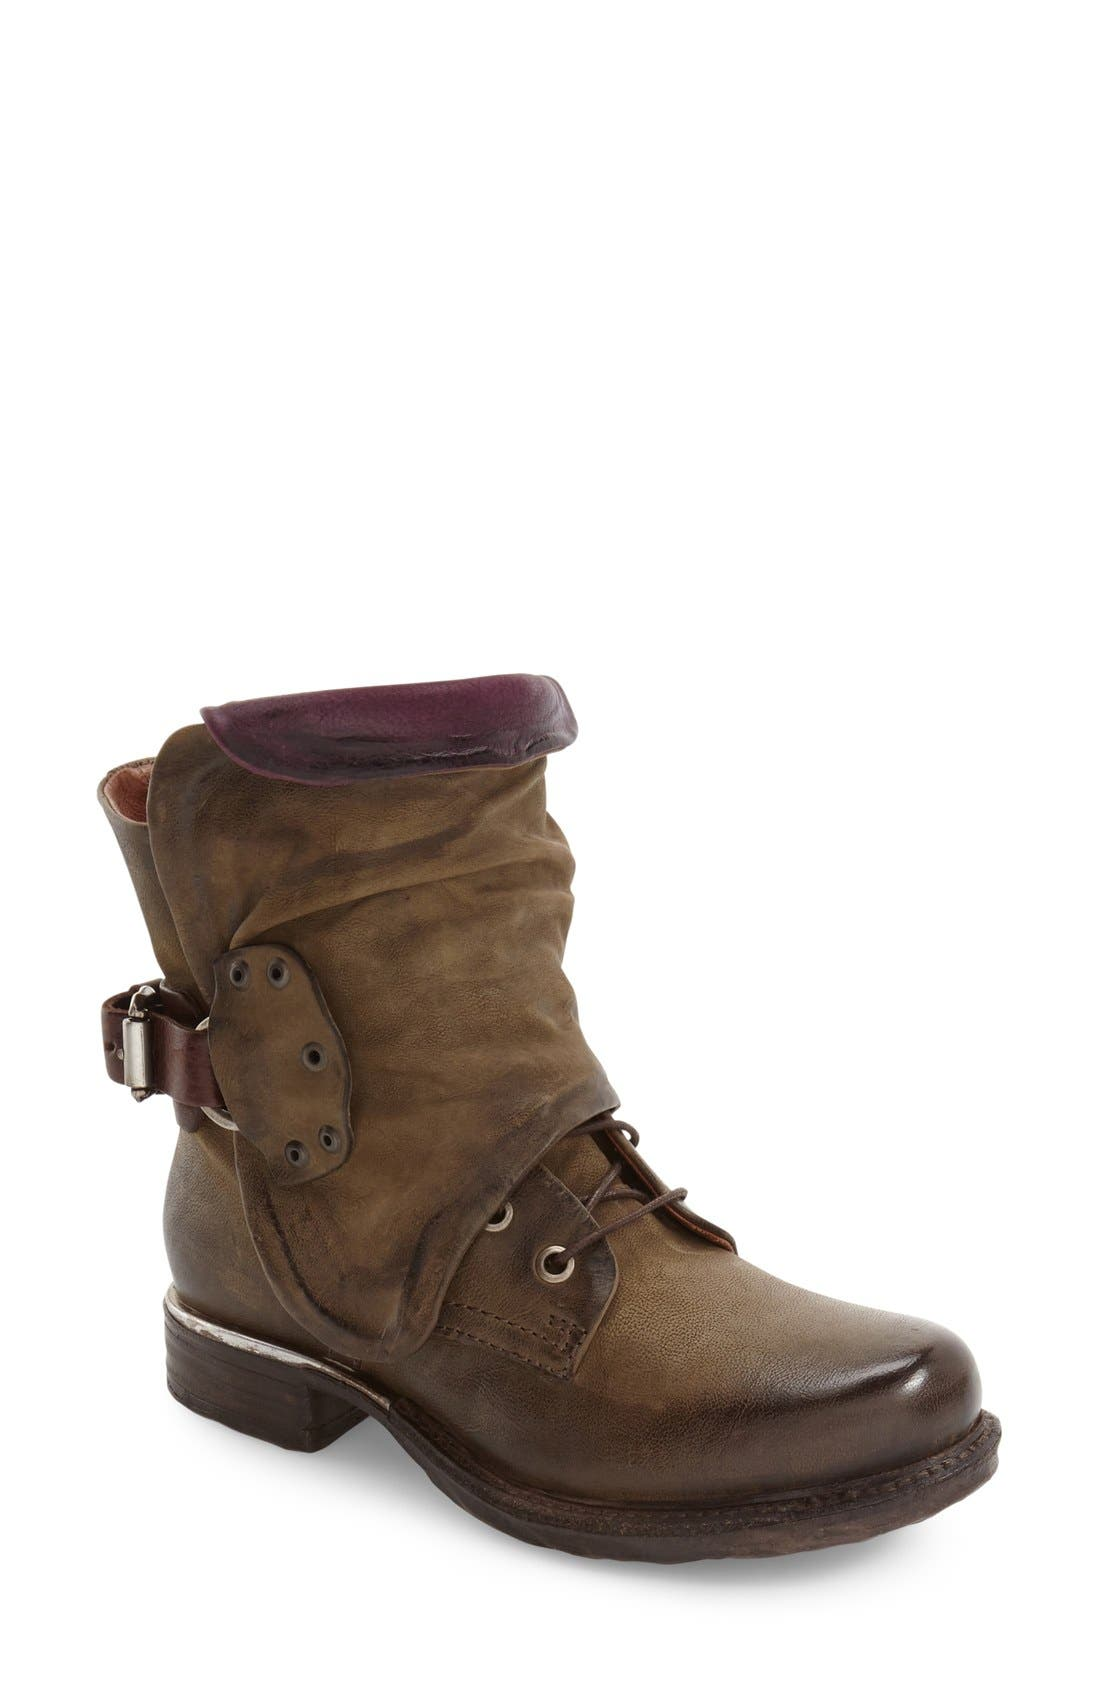 Alternate Image 1 Selected - A.S.98 Simon Slouchy Combat Boot (Women)